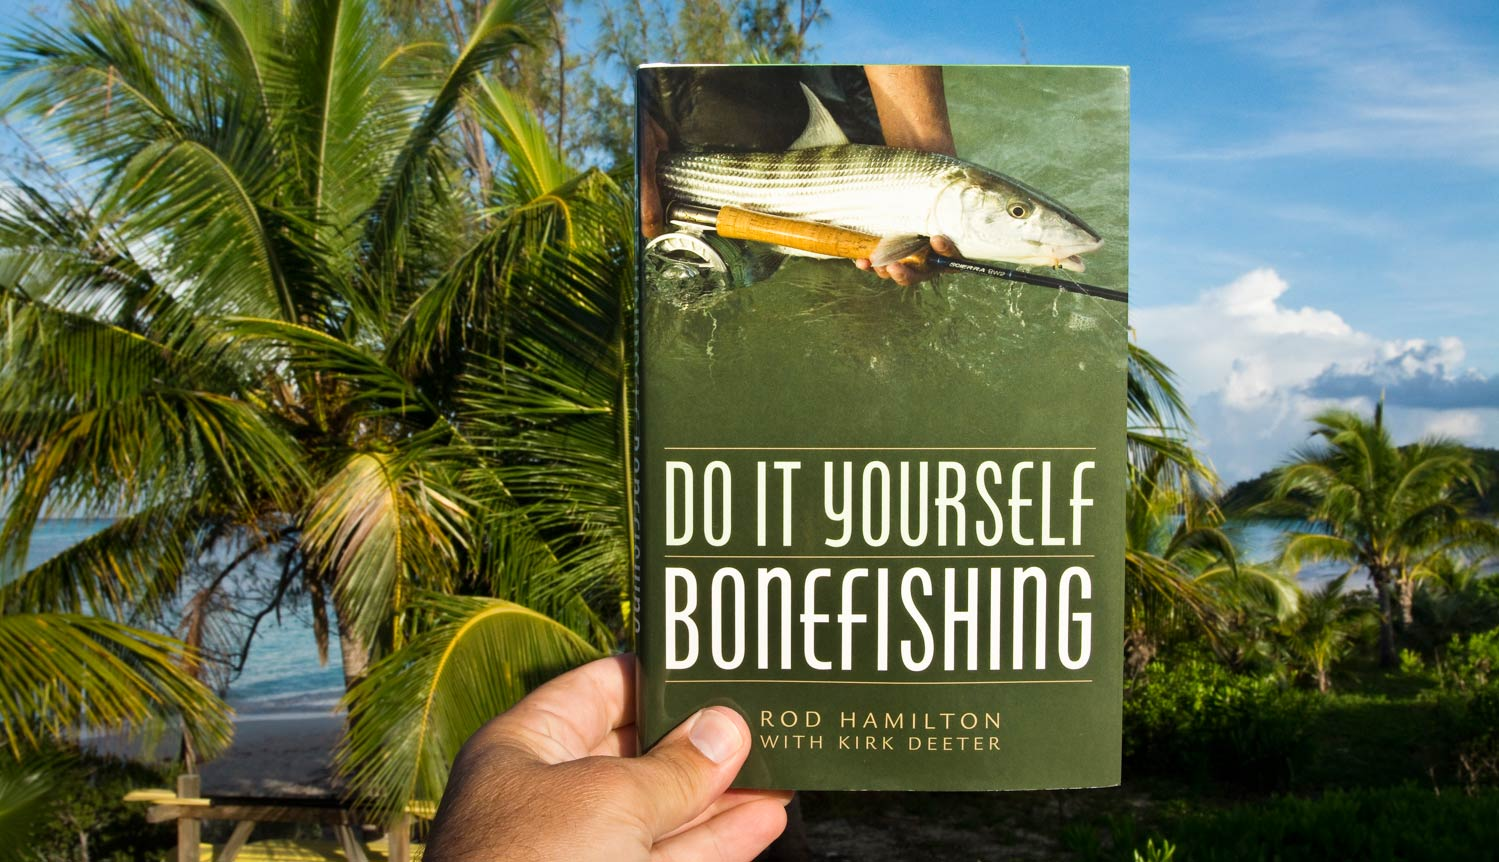 Do it yourself bonefishing by rod hamilton reviewed fly its every anglers dream to catch bonefish on the flats by themselves solutioingenieria Image collections